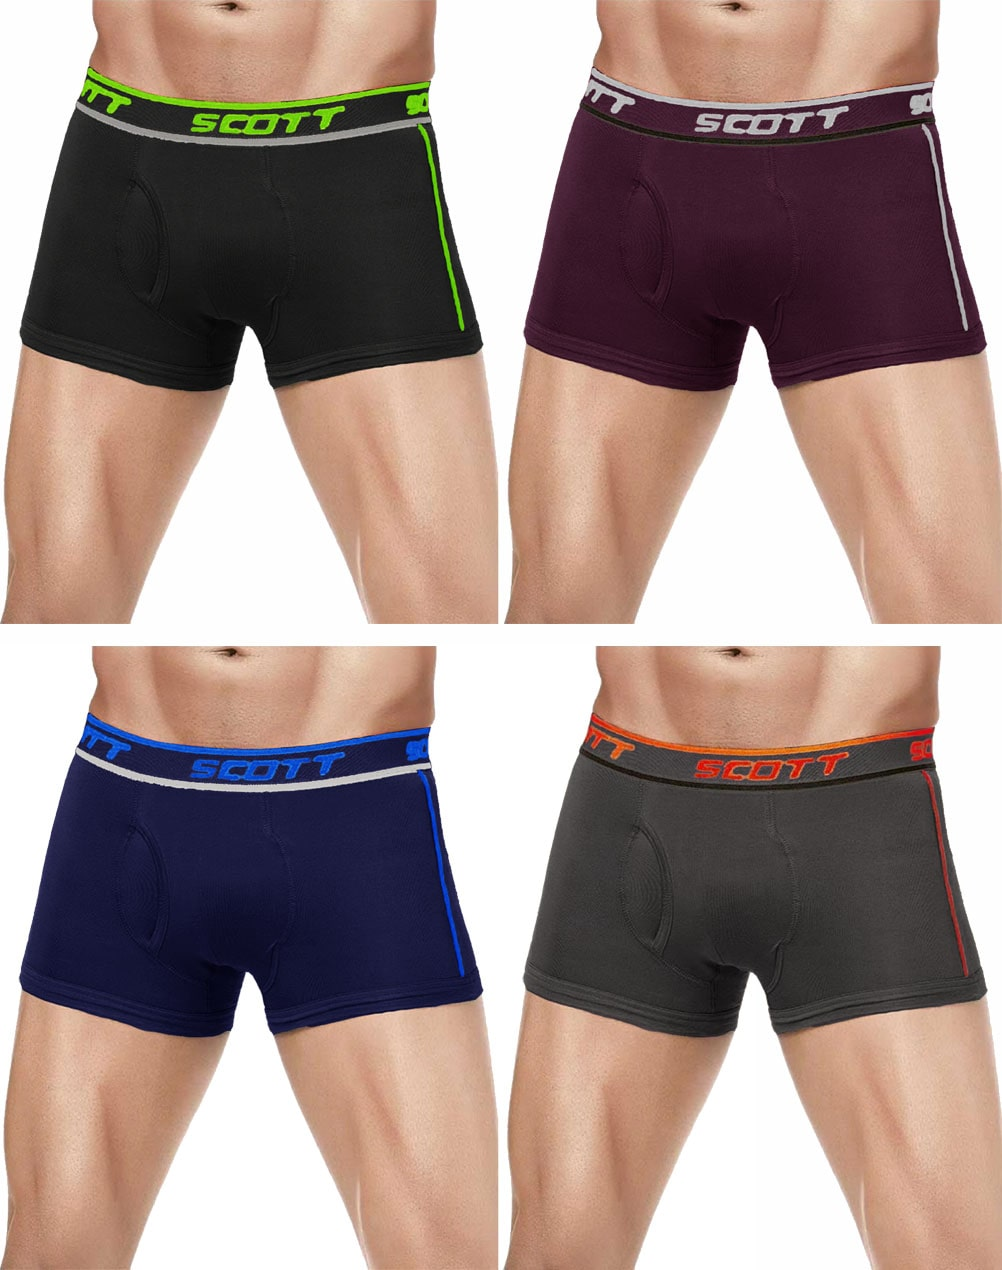 DIXCY SCOTT Solid Trunks   Assorted ,Pack Of 4 by Kuku Ki Dukaan